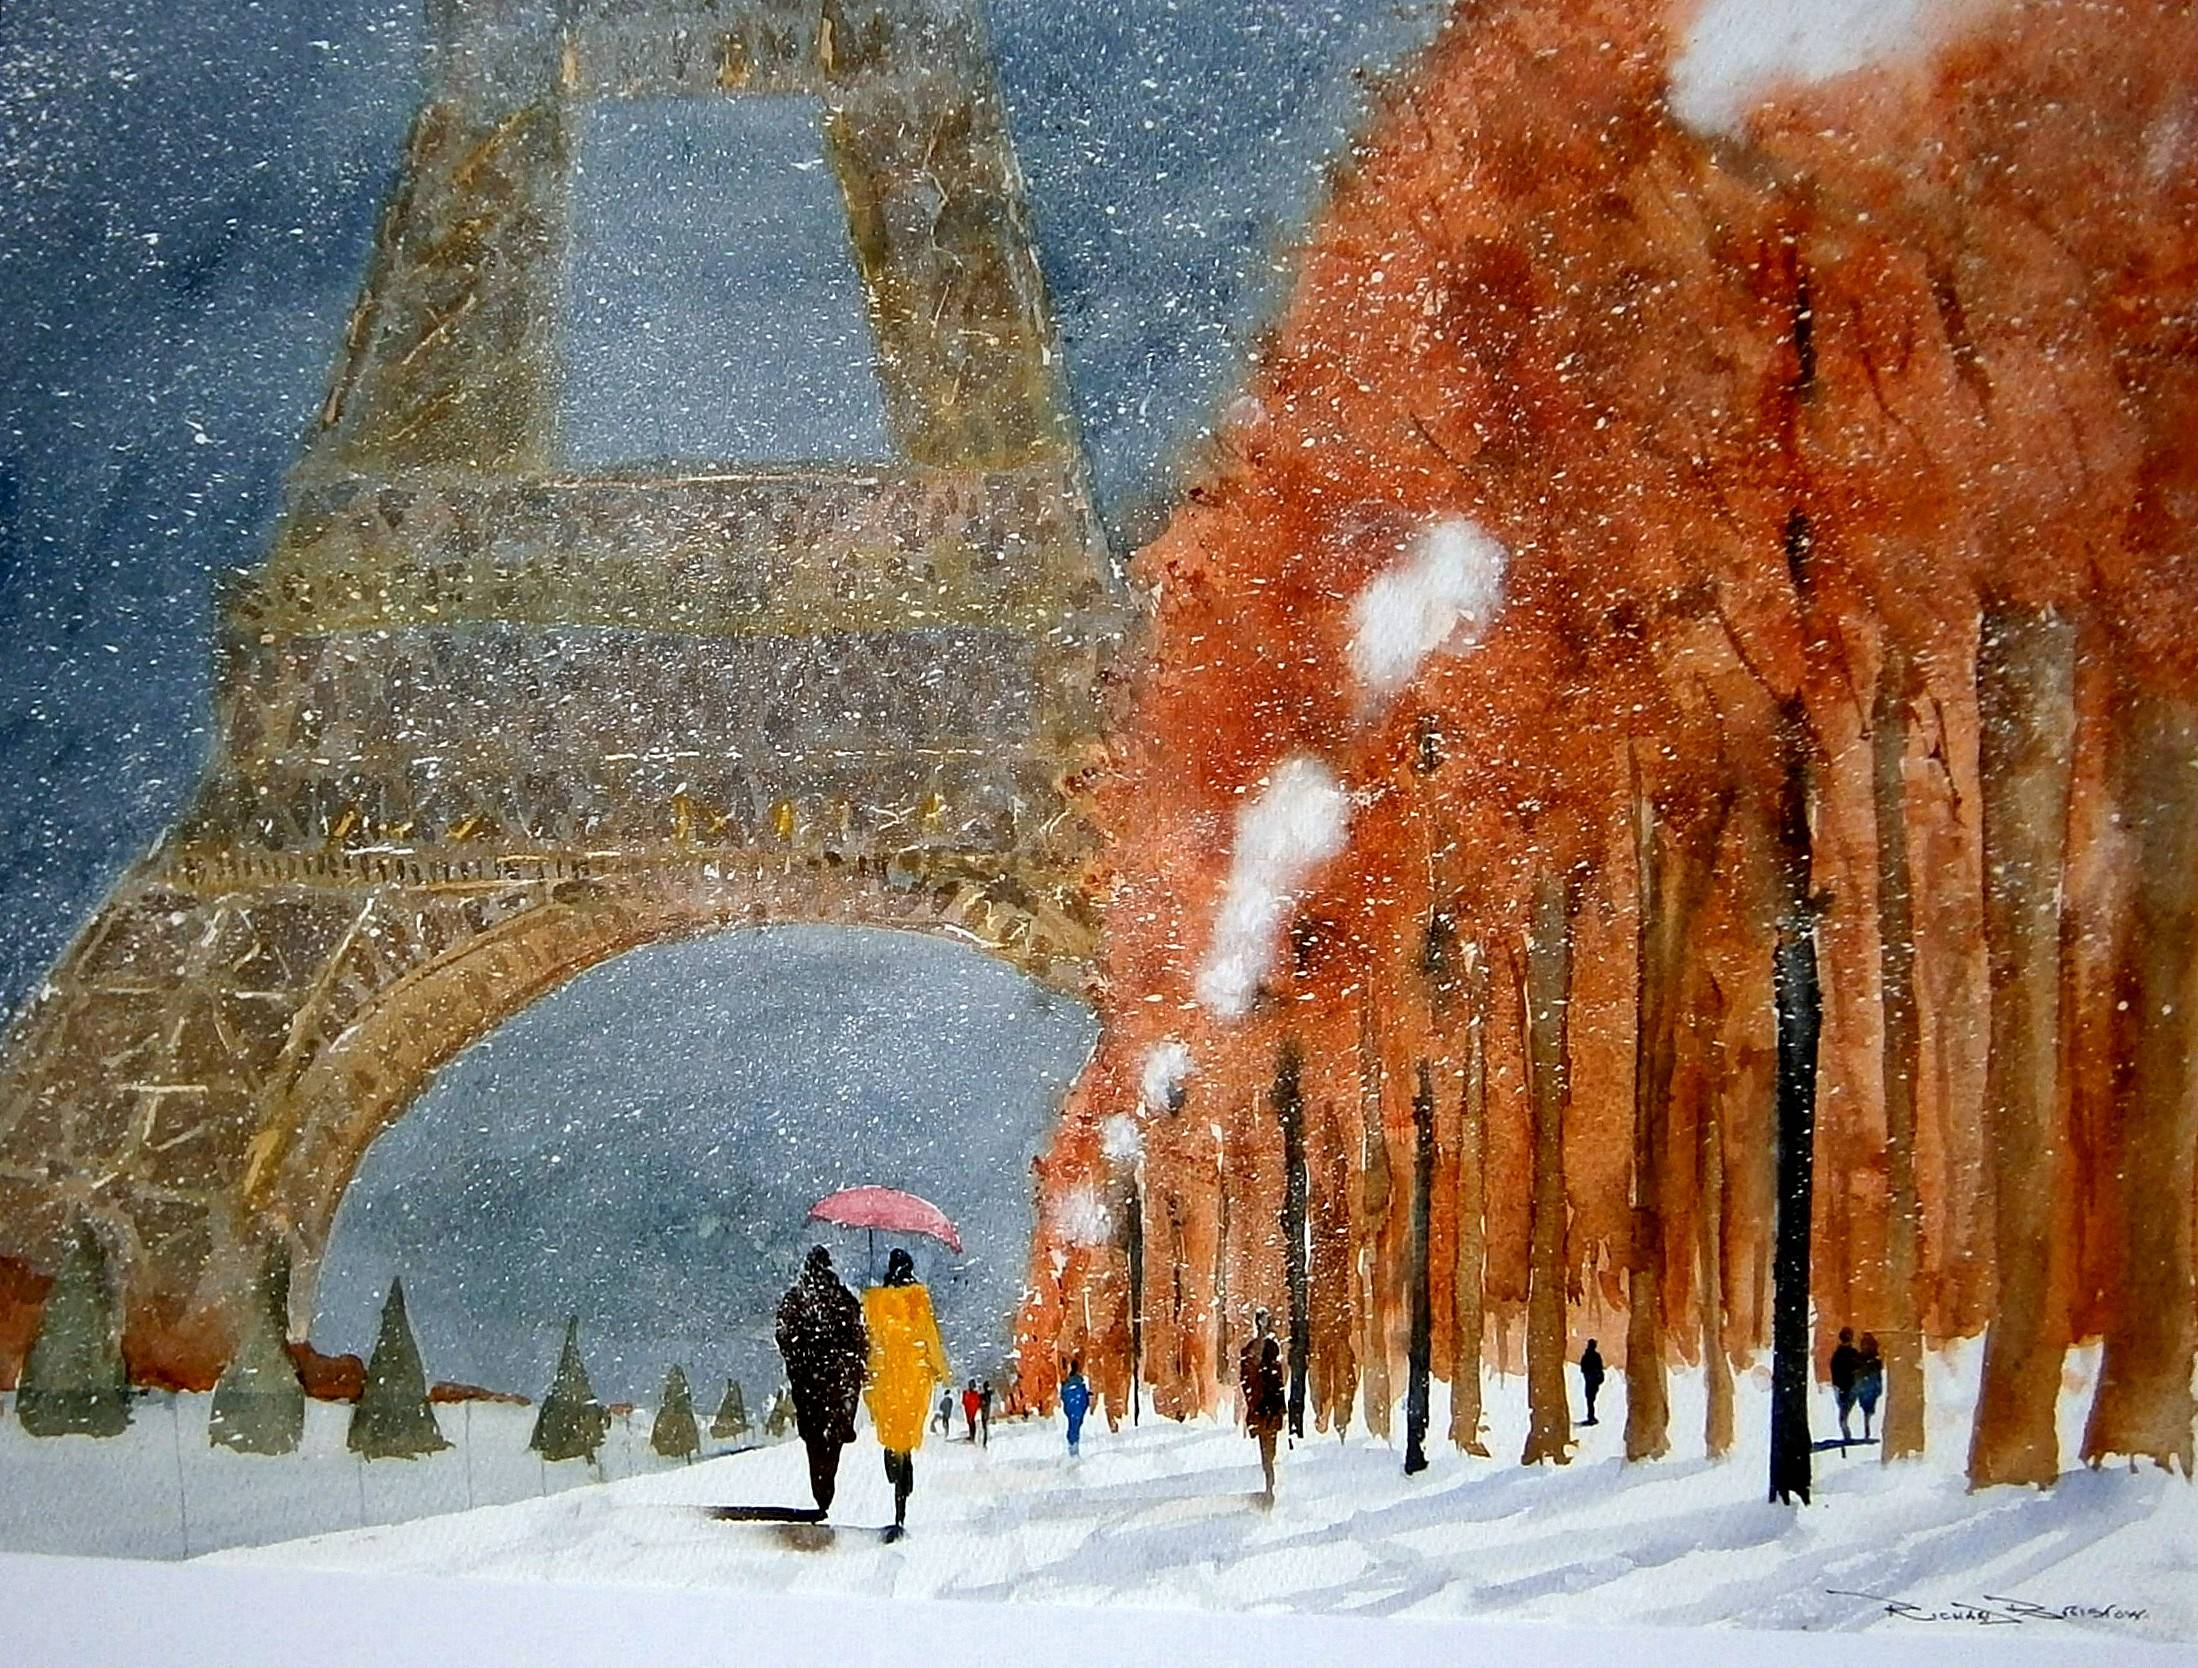 Winter in Paris #5